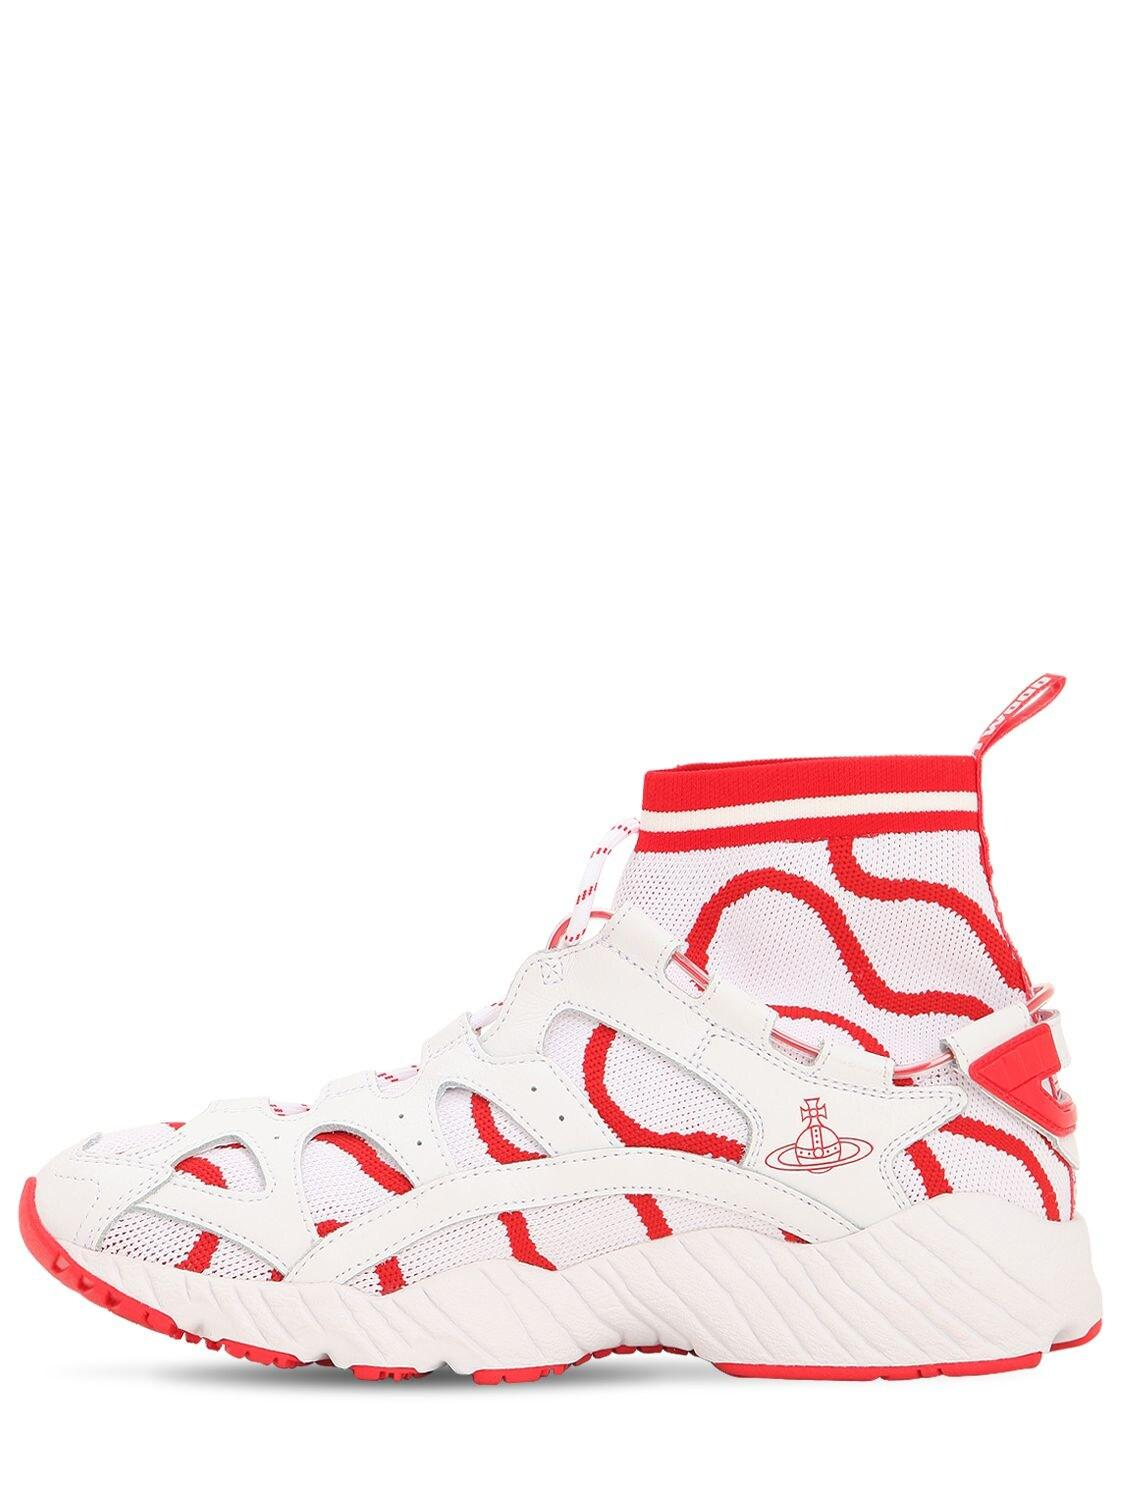 Asics Vivienne Westwood Gel-mai Knit Sneakers in White/Red (Red) for Men - Lyst